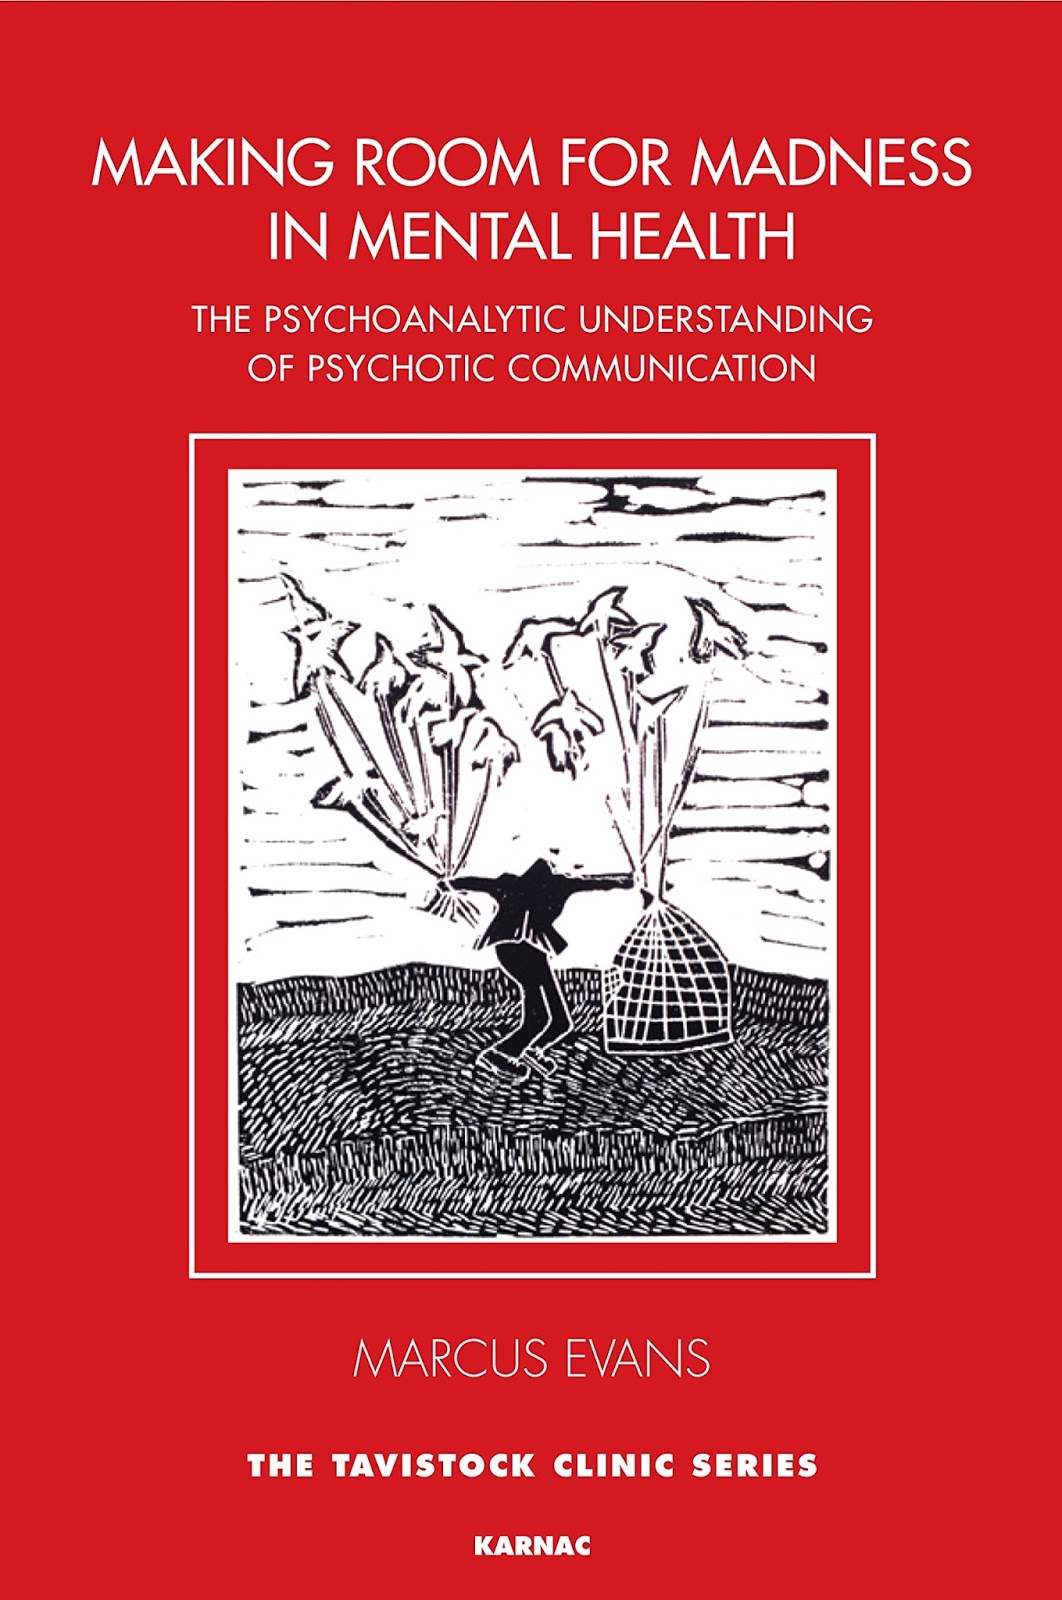 the meaning of health essays in existentialism psychoanalysis and the meaning of health essays in existentialism psychoanalysis and religion